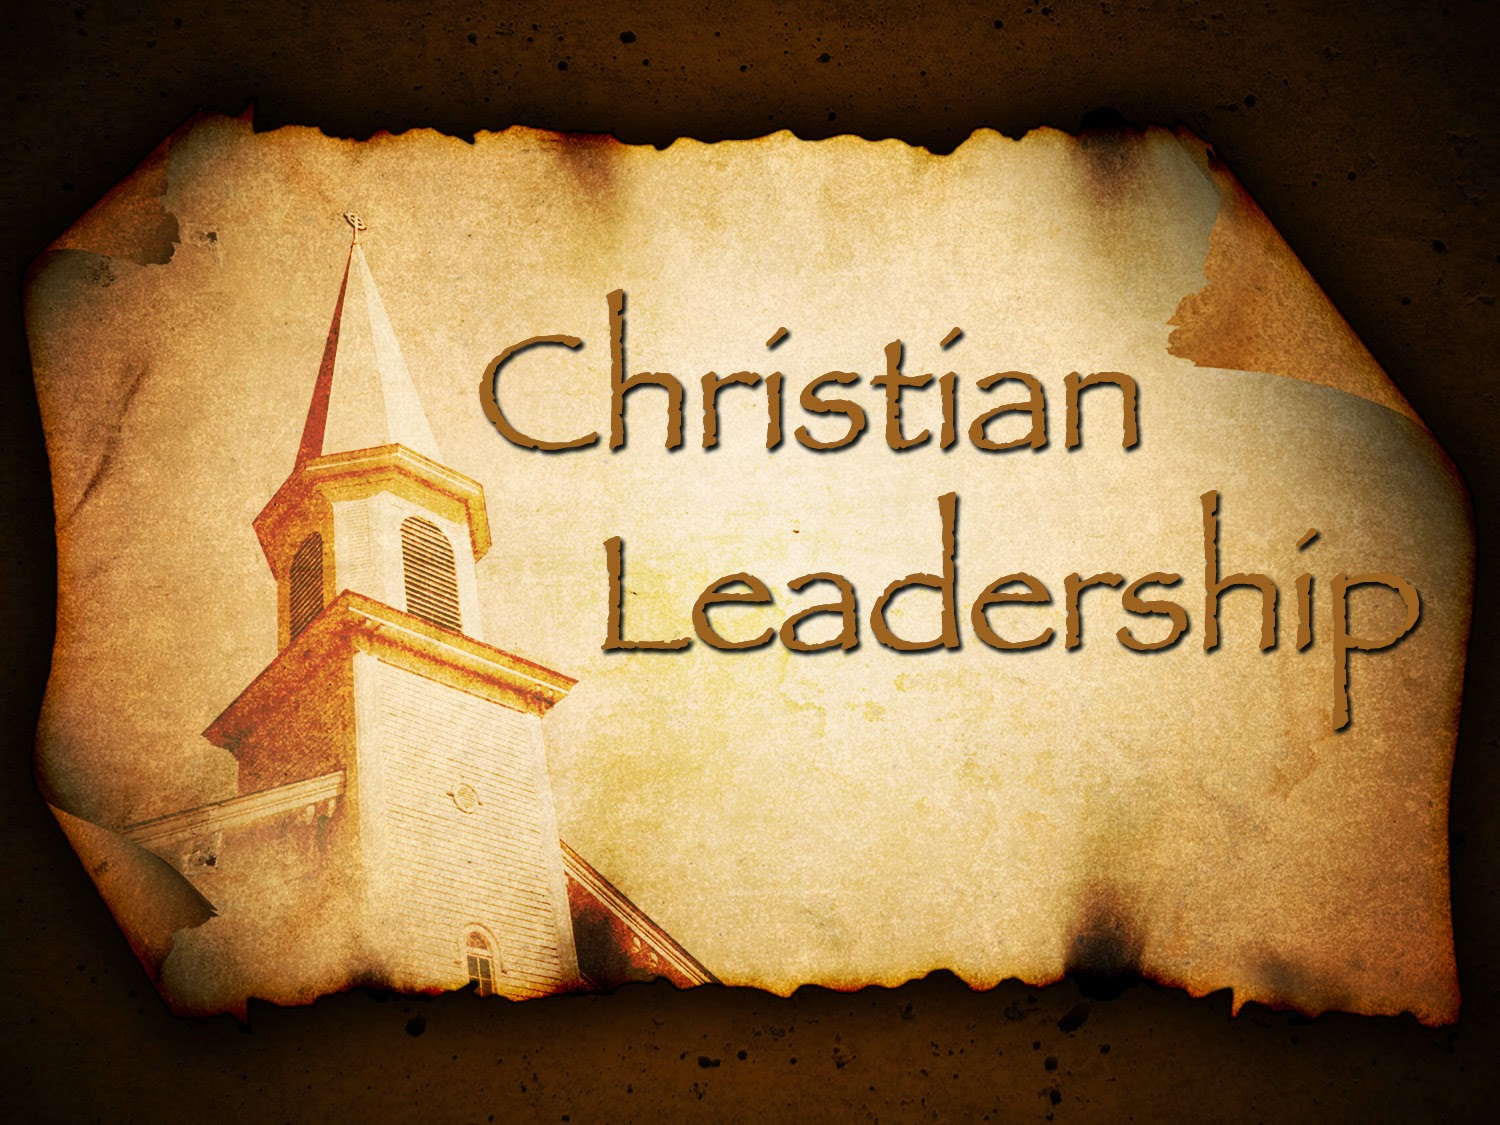 christain leadership Check out this curated collection of christian leadership quotes including great quotes from christian leaders and biblical scripture.